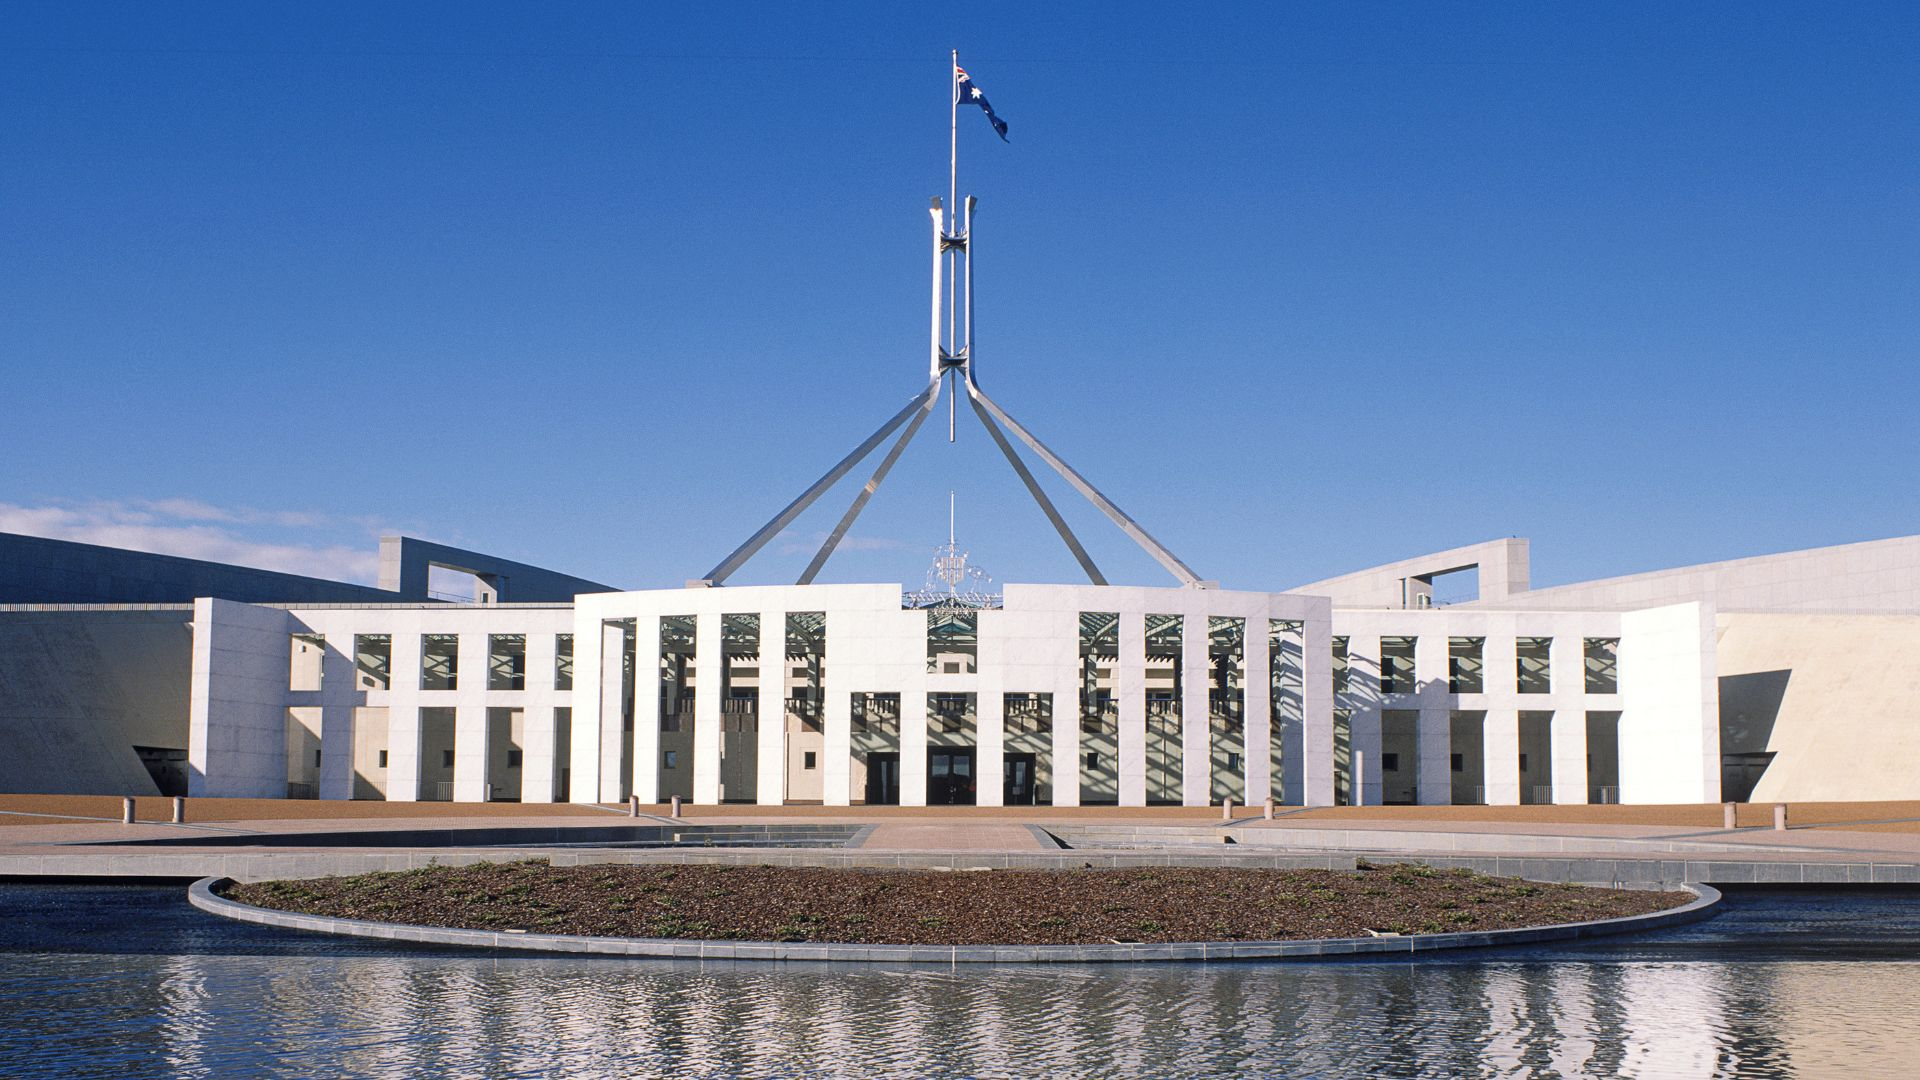 Charles Sturt invited by Senate Committee to present at public roundtable